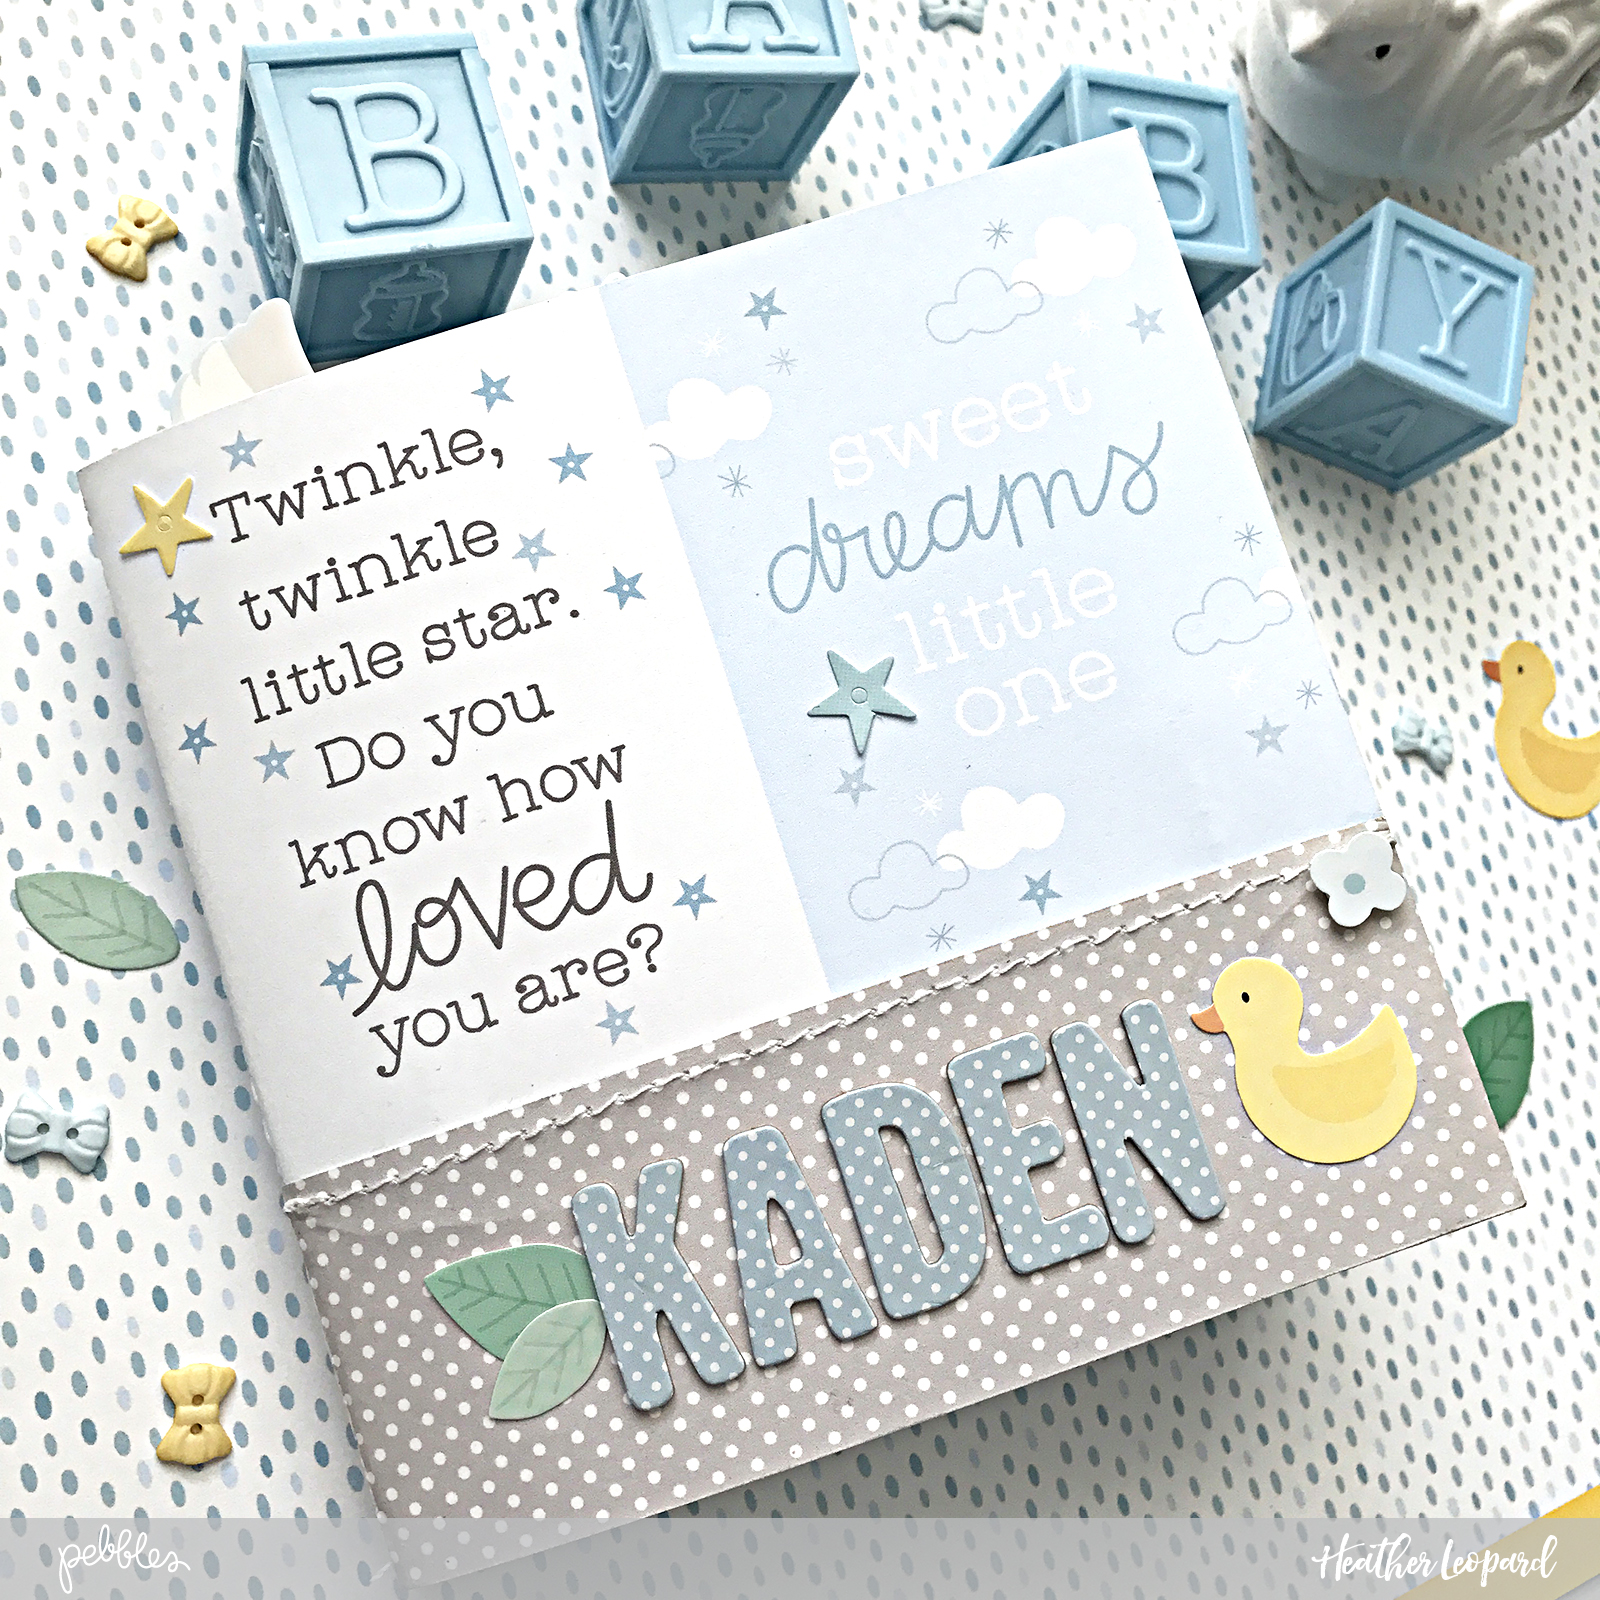 milestones baby gift | mini album by Heather Leopard using @pebblesinc #lullaby collection #madewithpebbles #scrapbooking #minialbum #scrapbook #baby #babymilestones